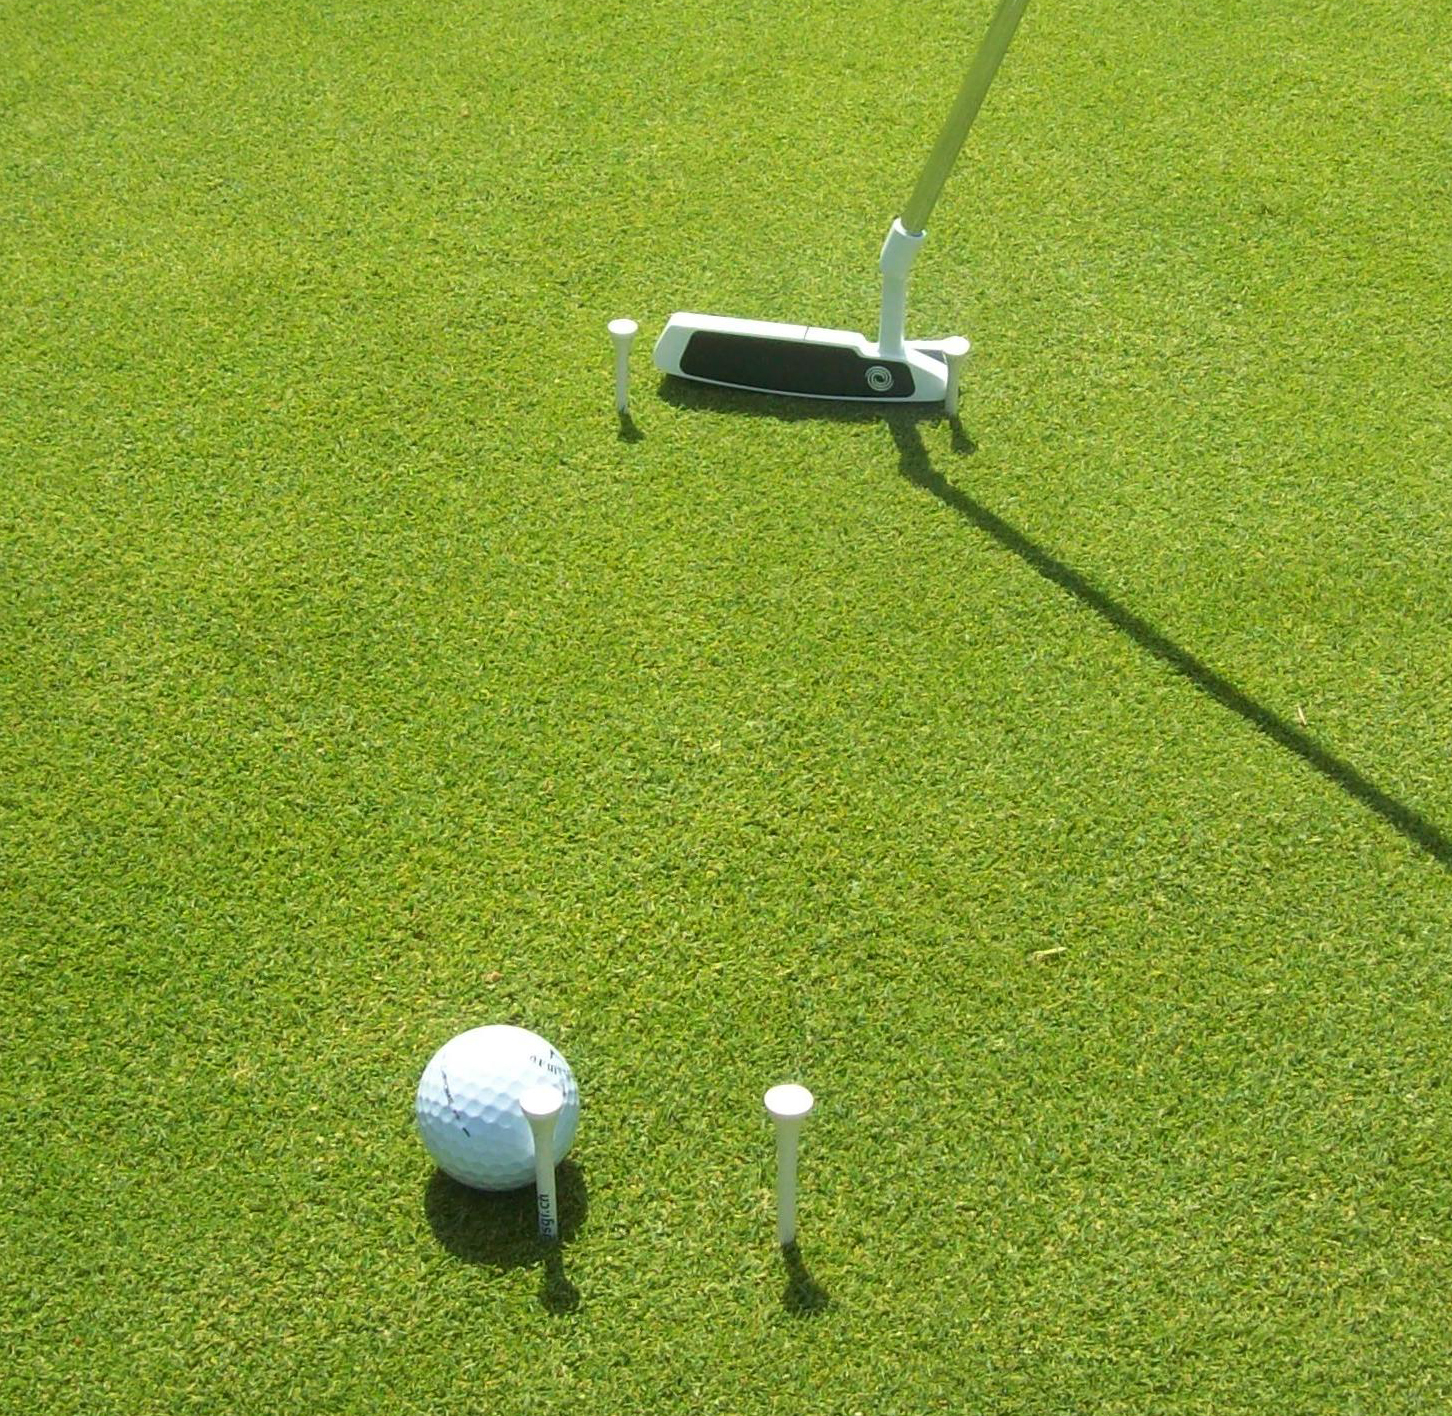 Example of a bad putt, coming in on the inside